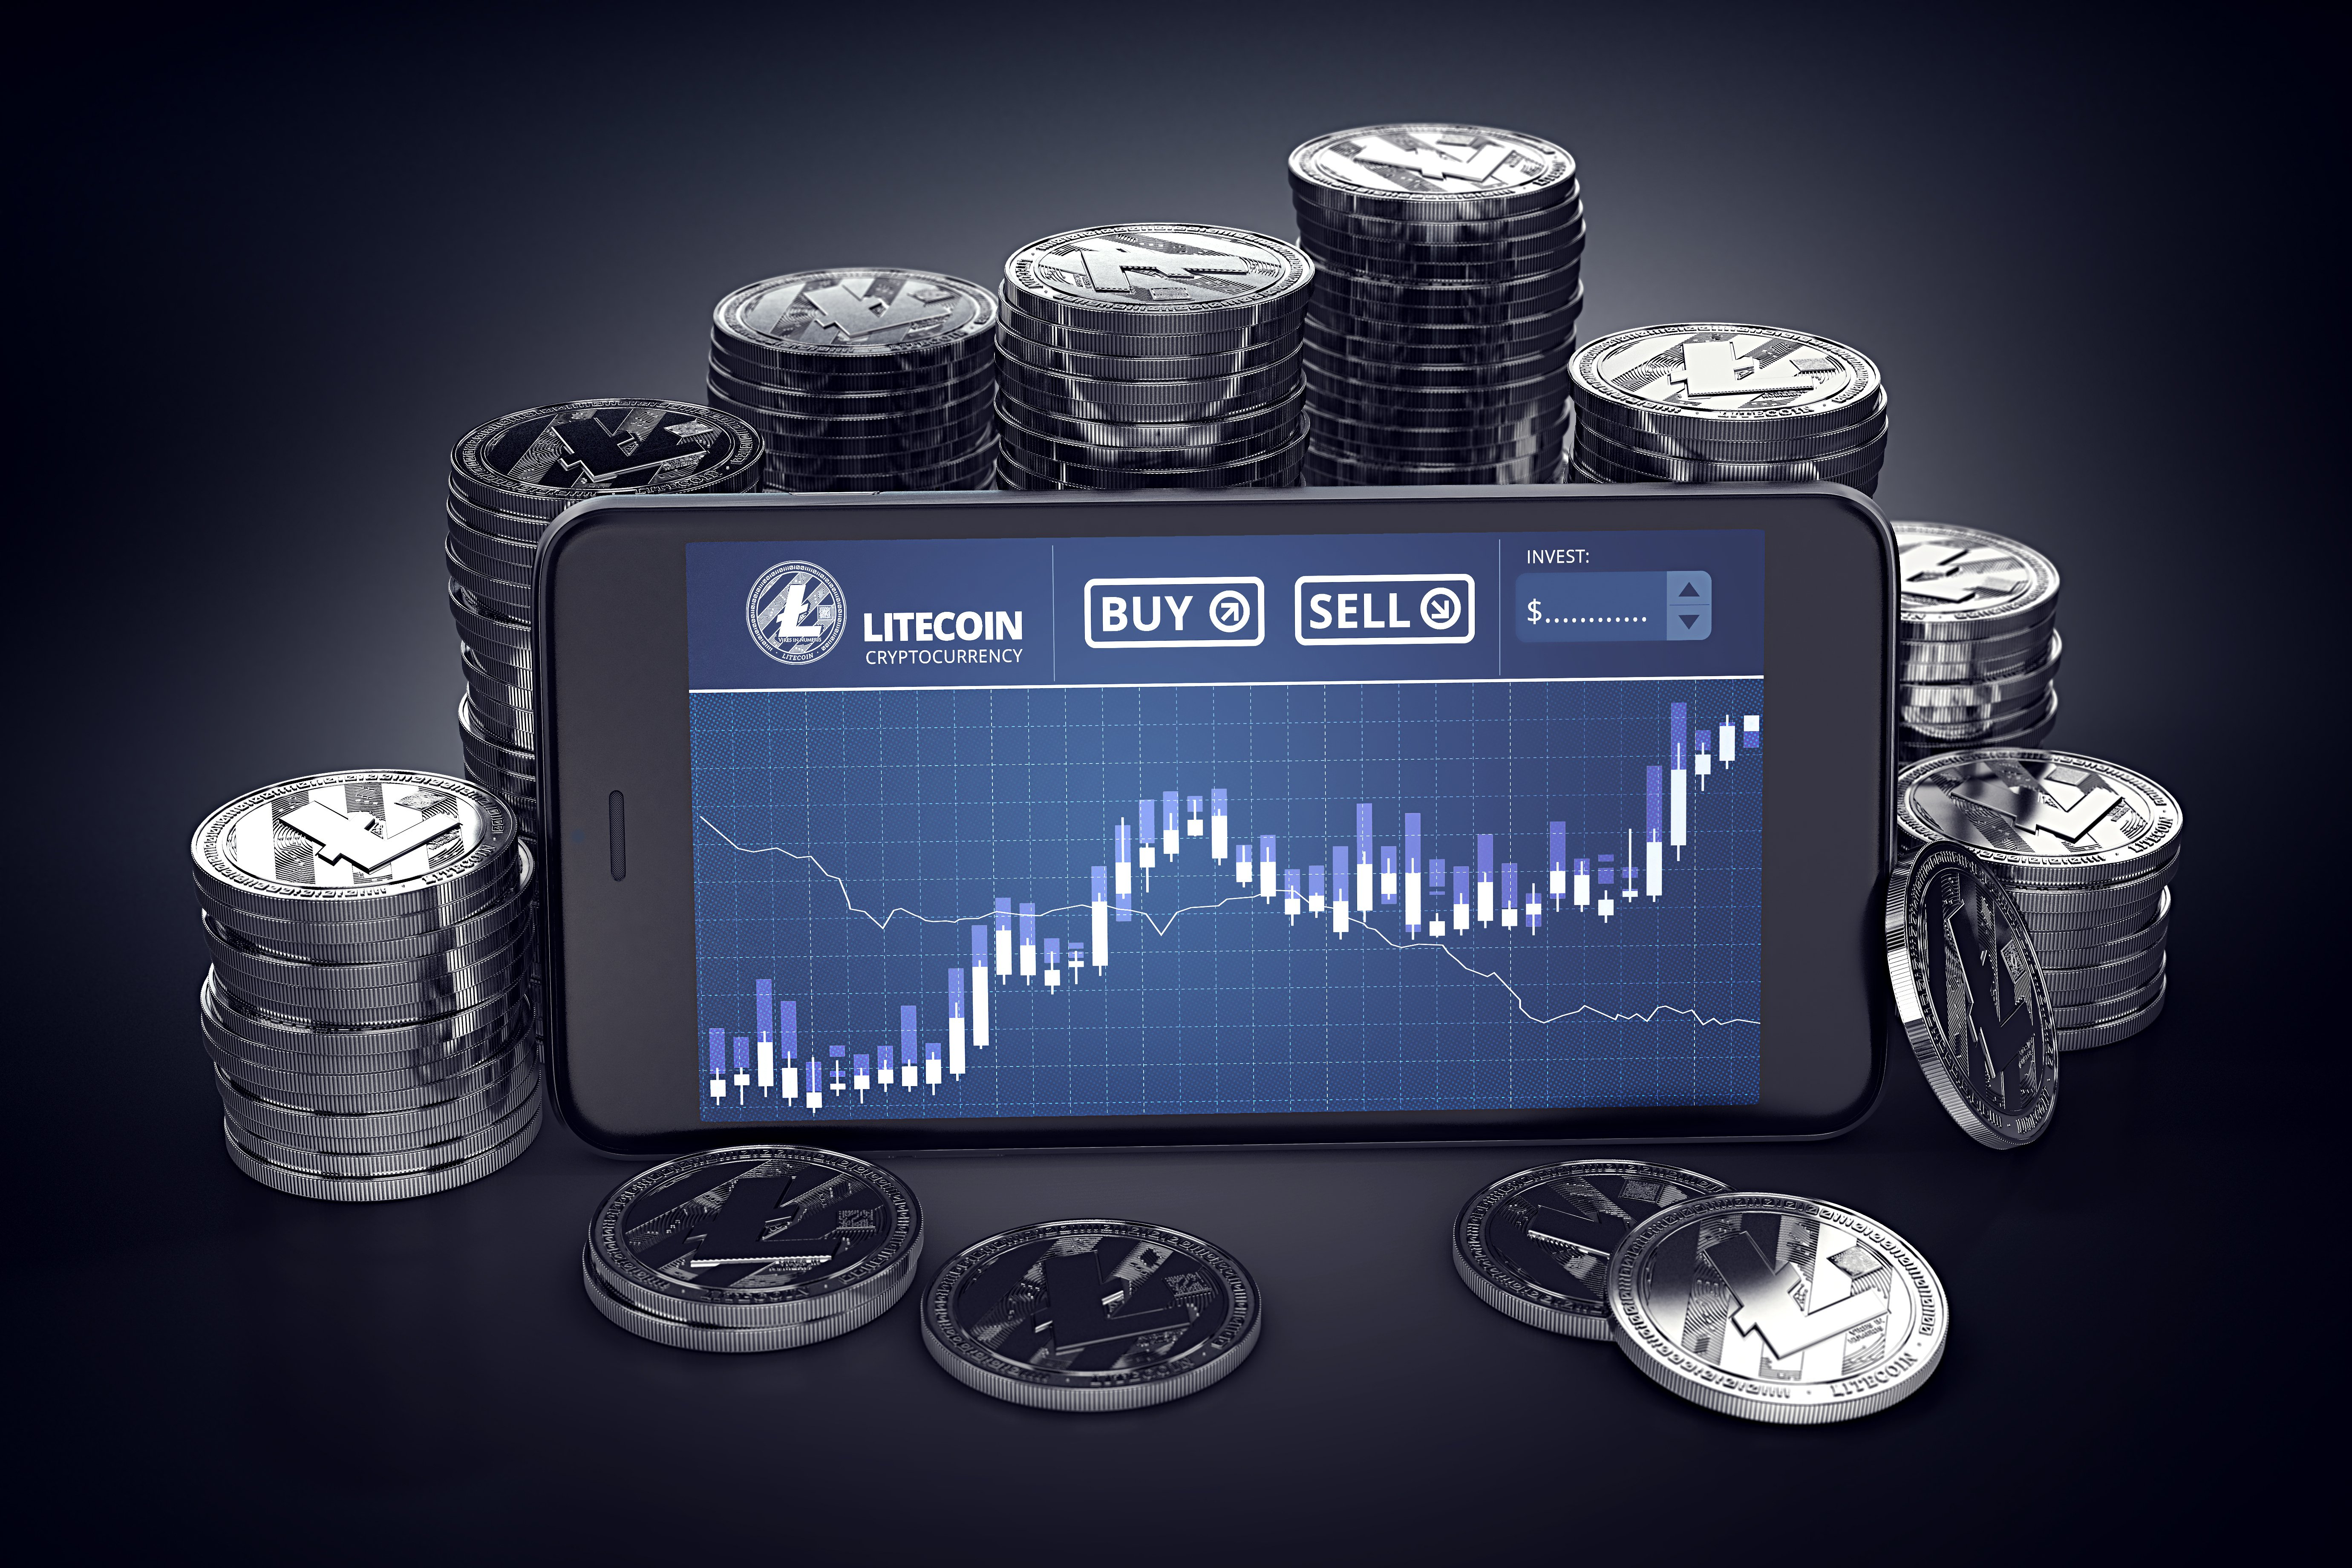 litecoin chart on smartphone